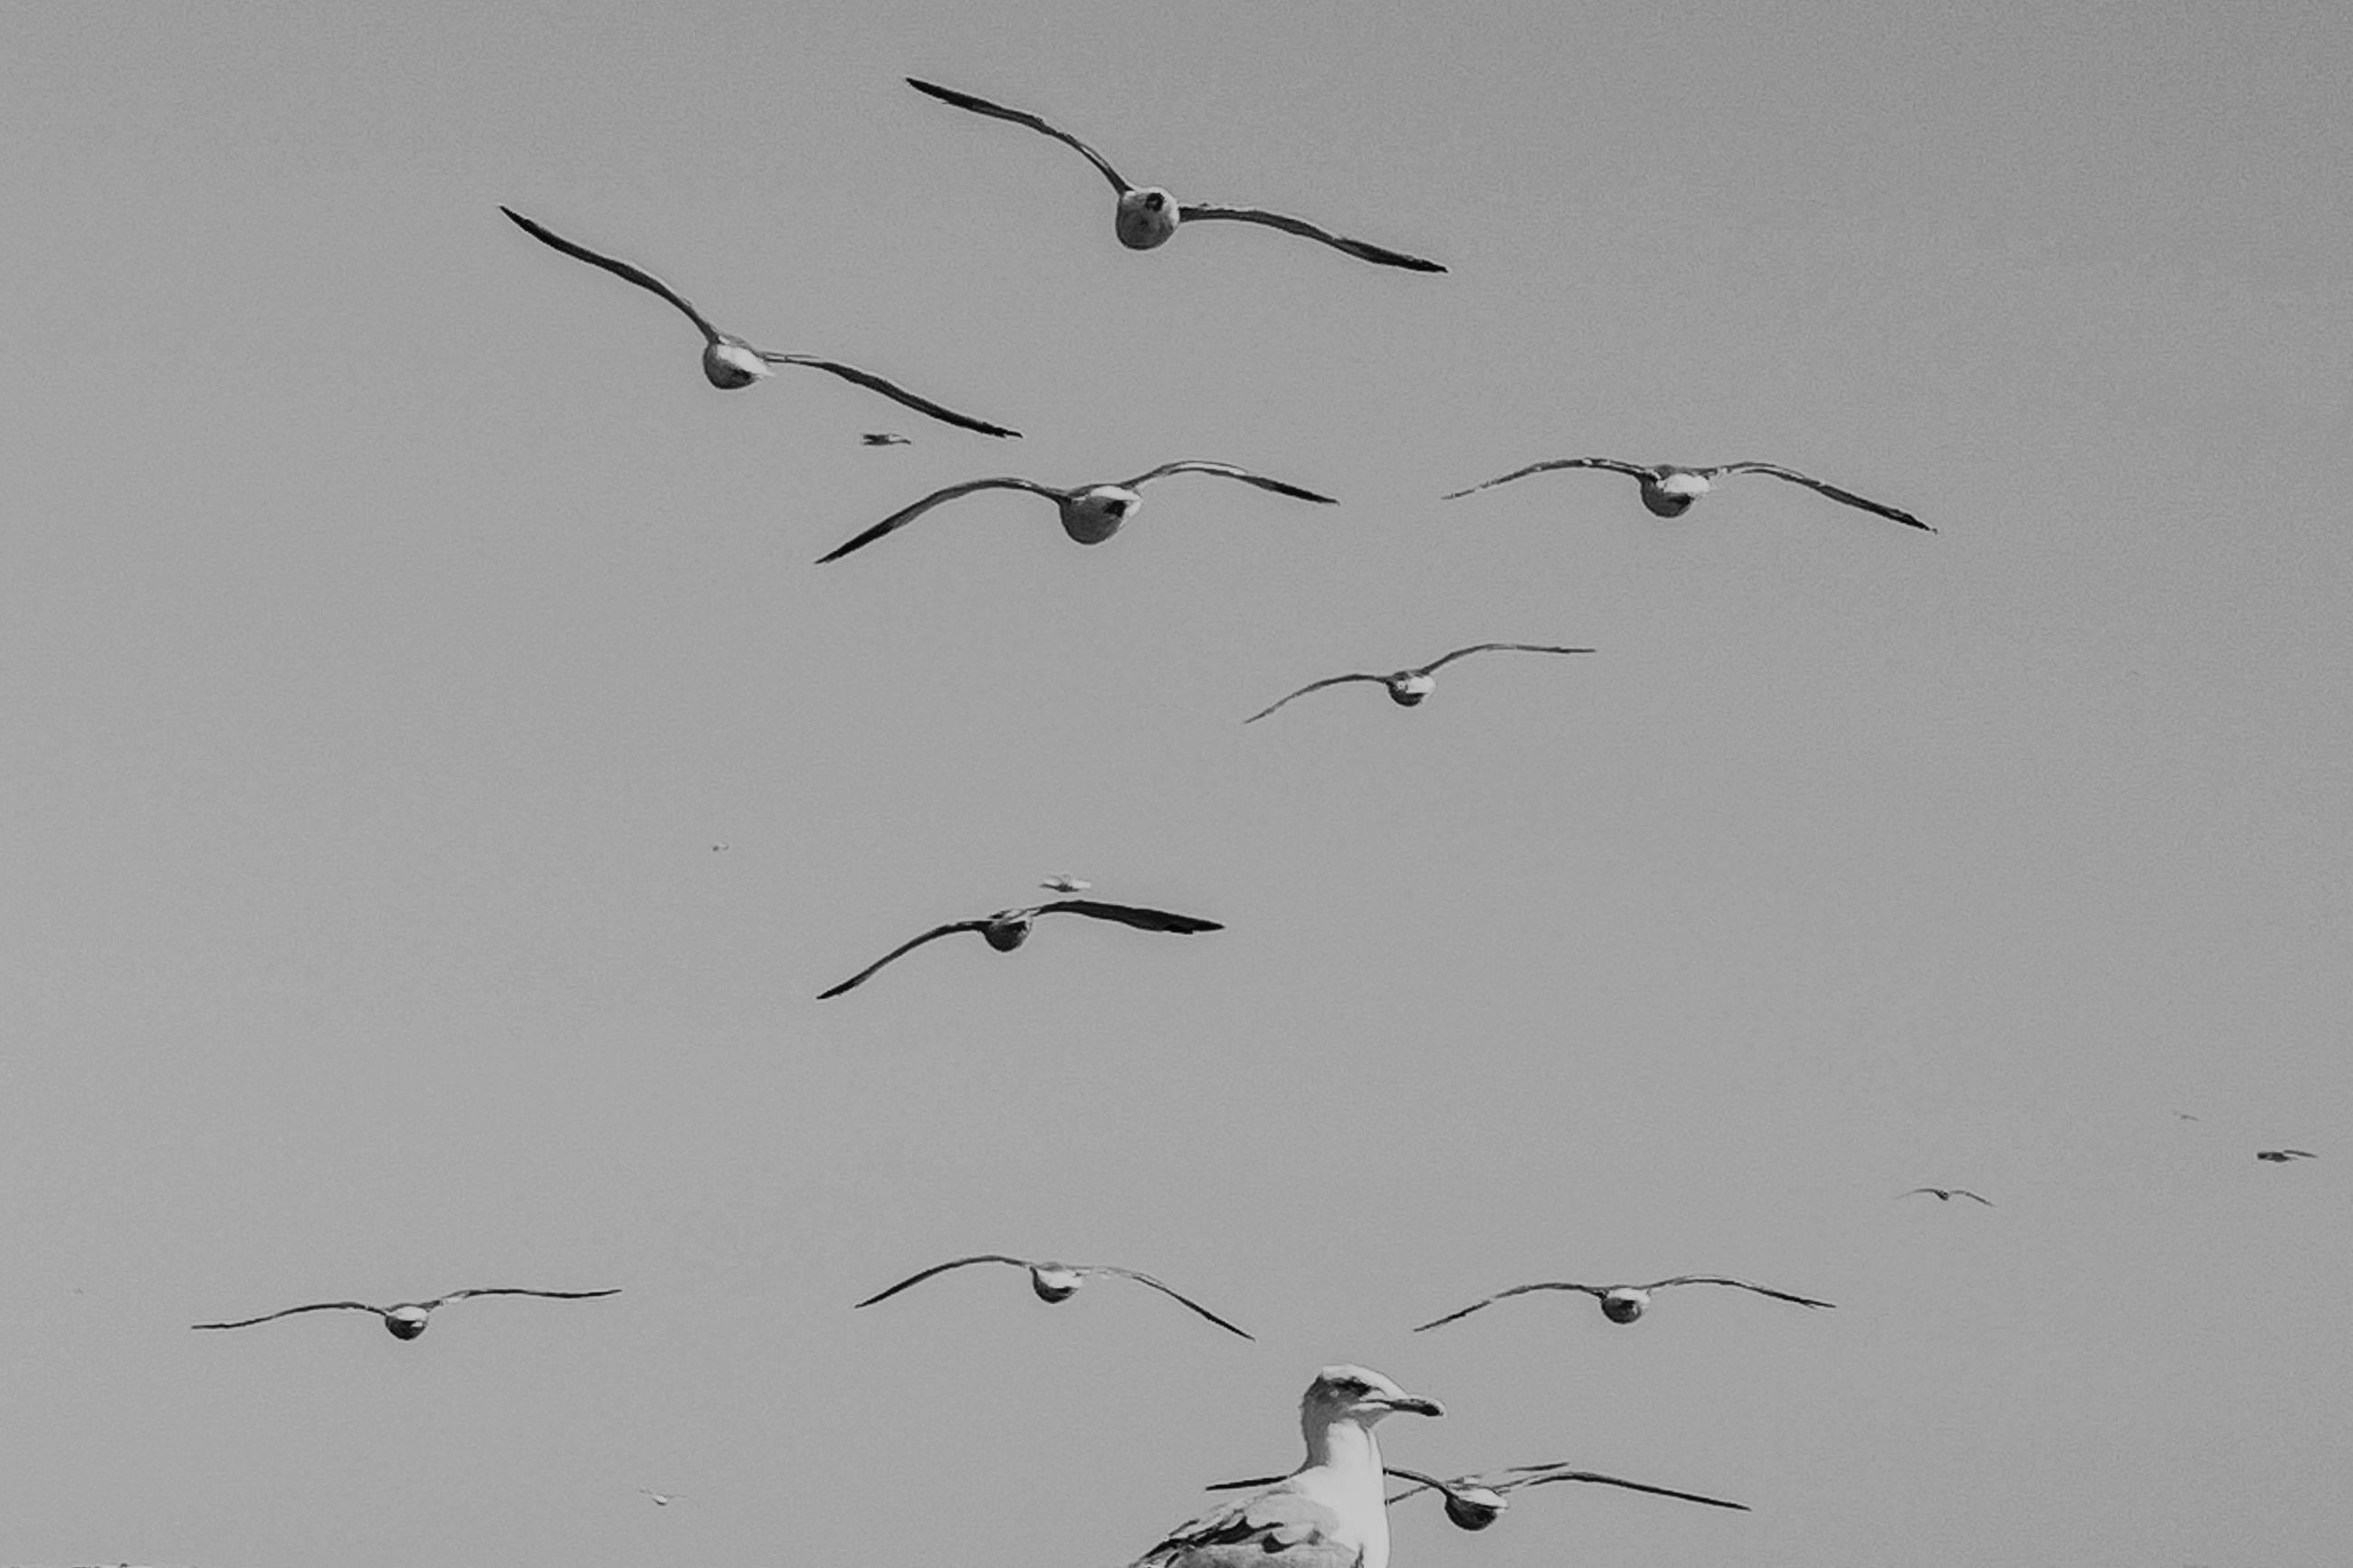 animal themes, animal wildlife, animal, bird, vertebrate, animals in the wild, flying, group of animals, spread wings, low angle view, sky, no people, mid-air, flock of birds, nature, large group of animals, day, clear sky, beauty in nature, togetherness